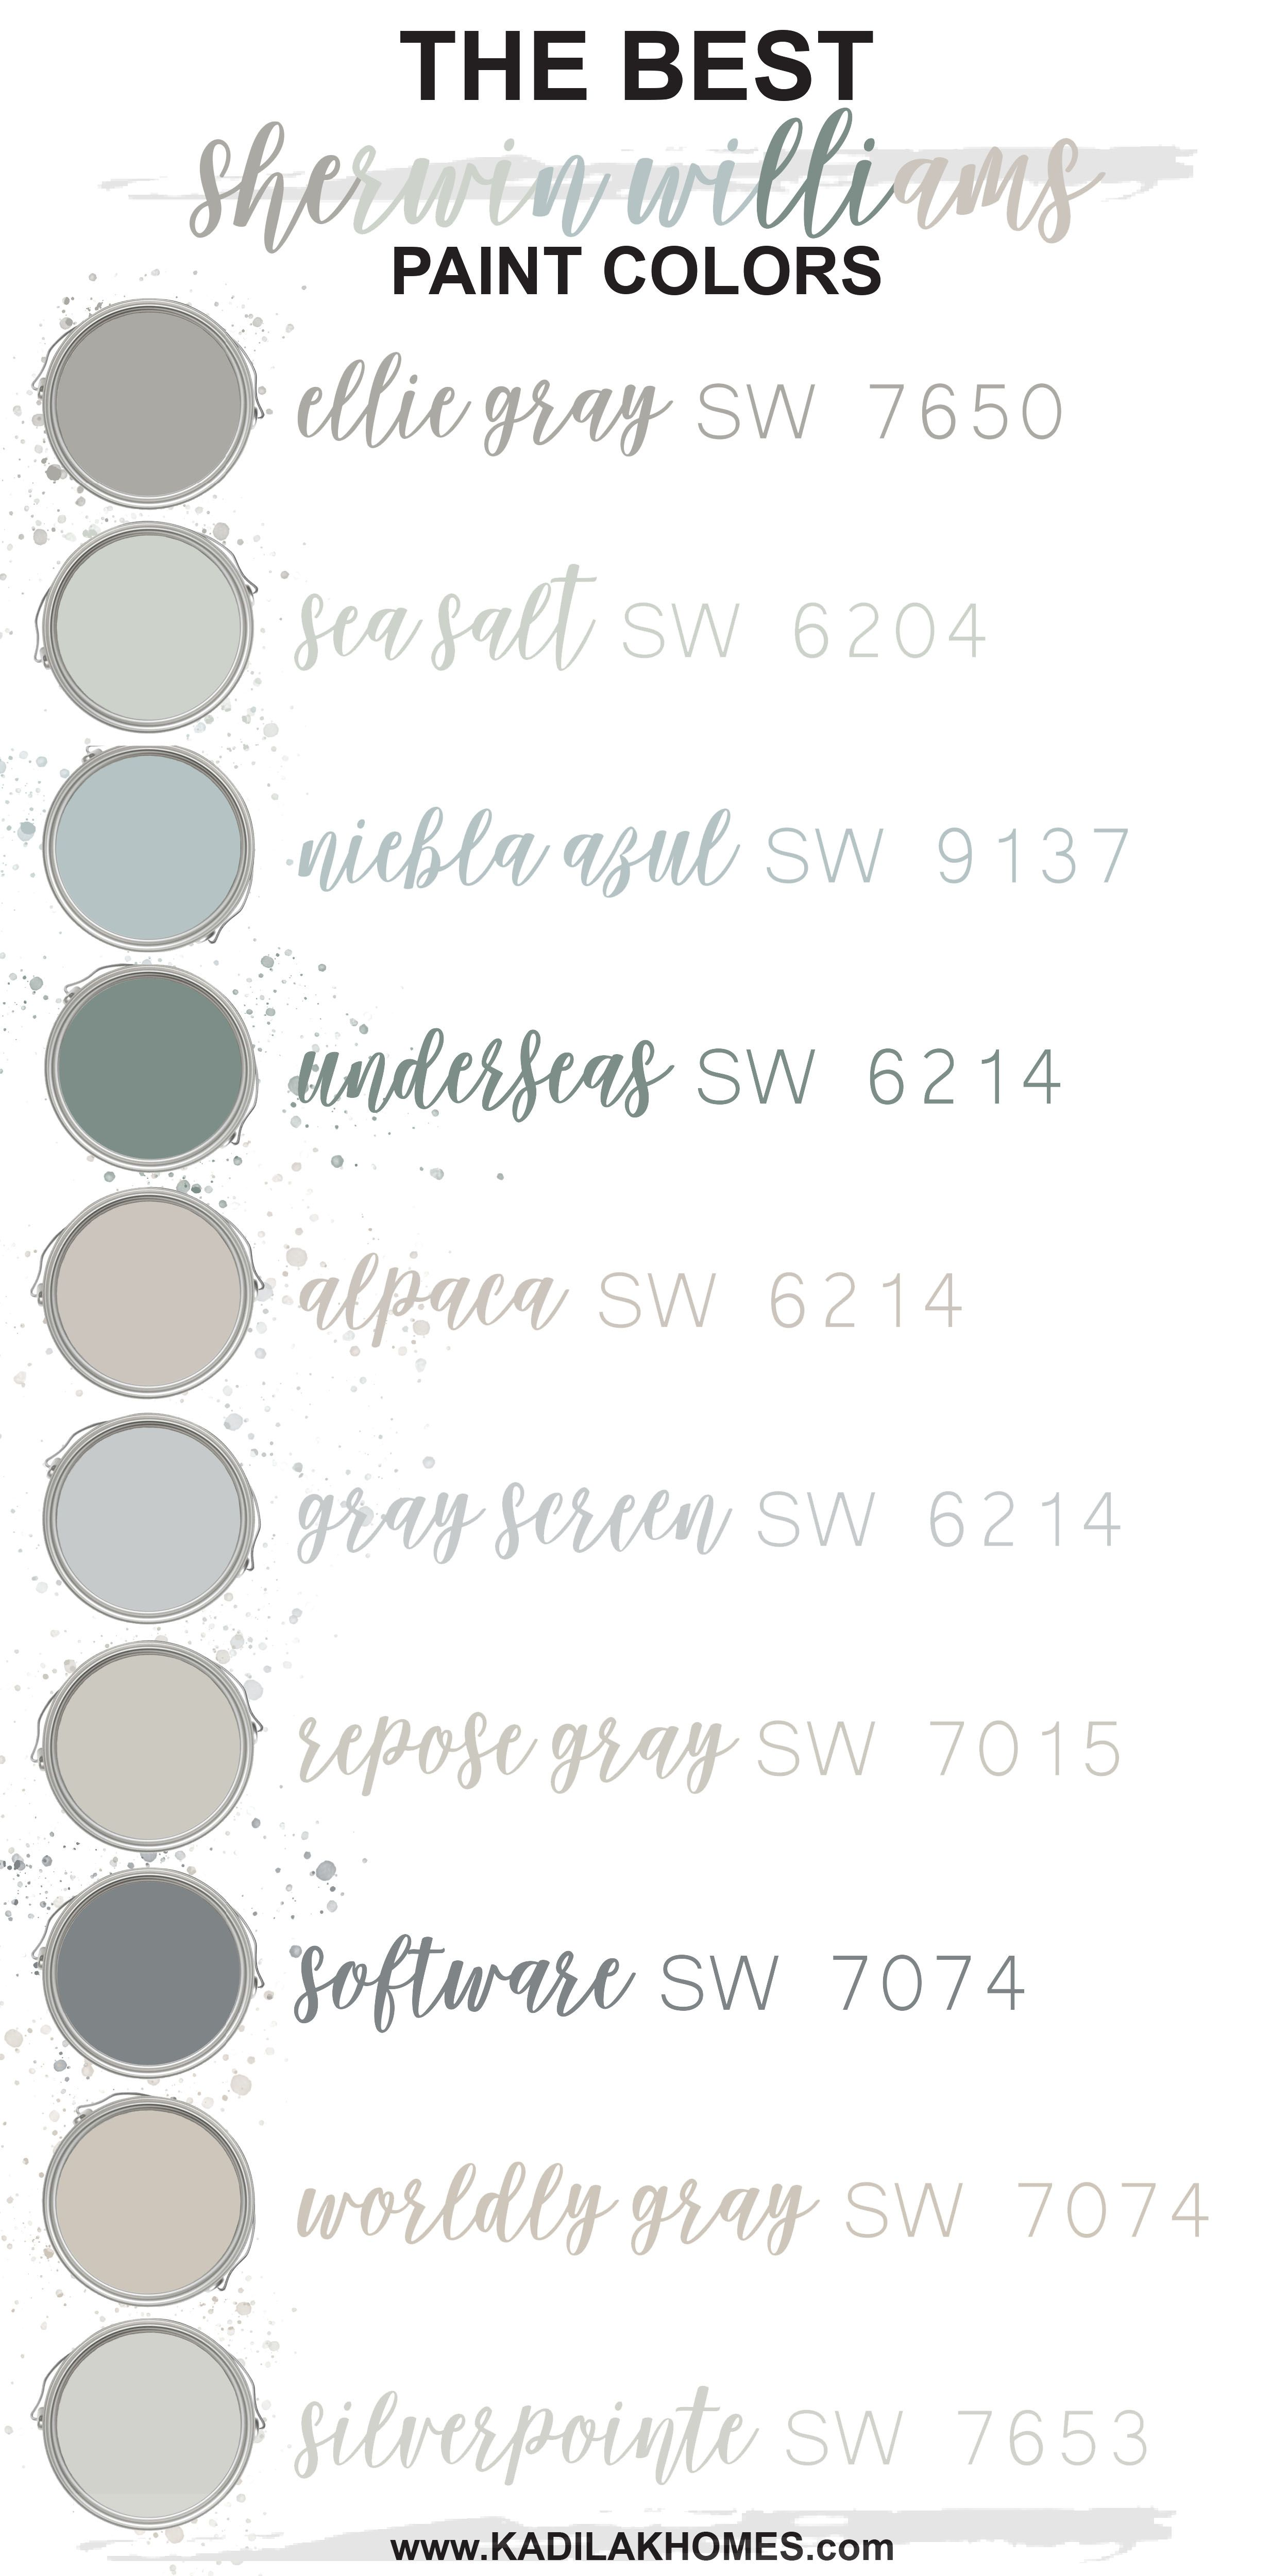 The Best Sherwin Williams Paint Colors!